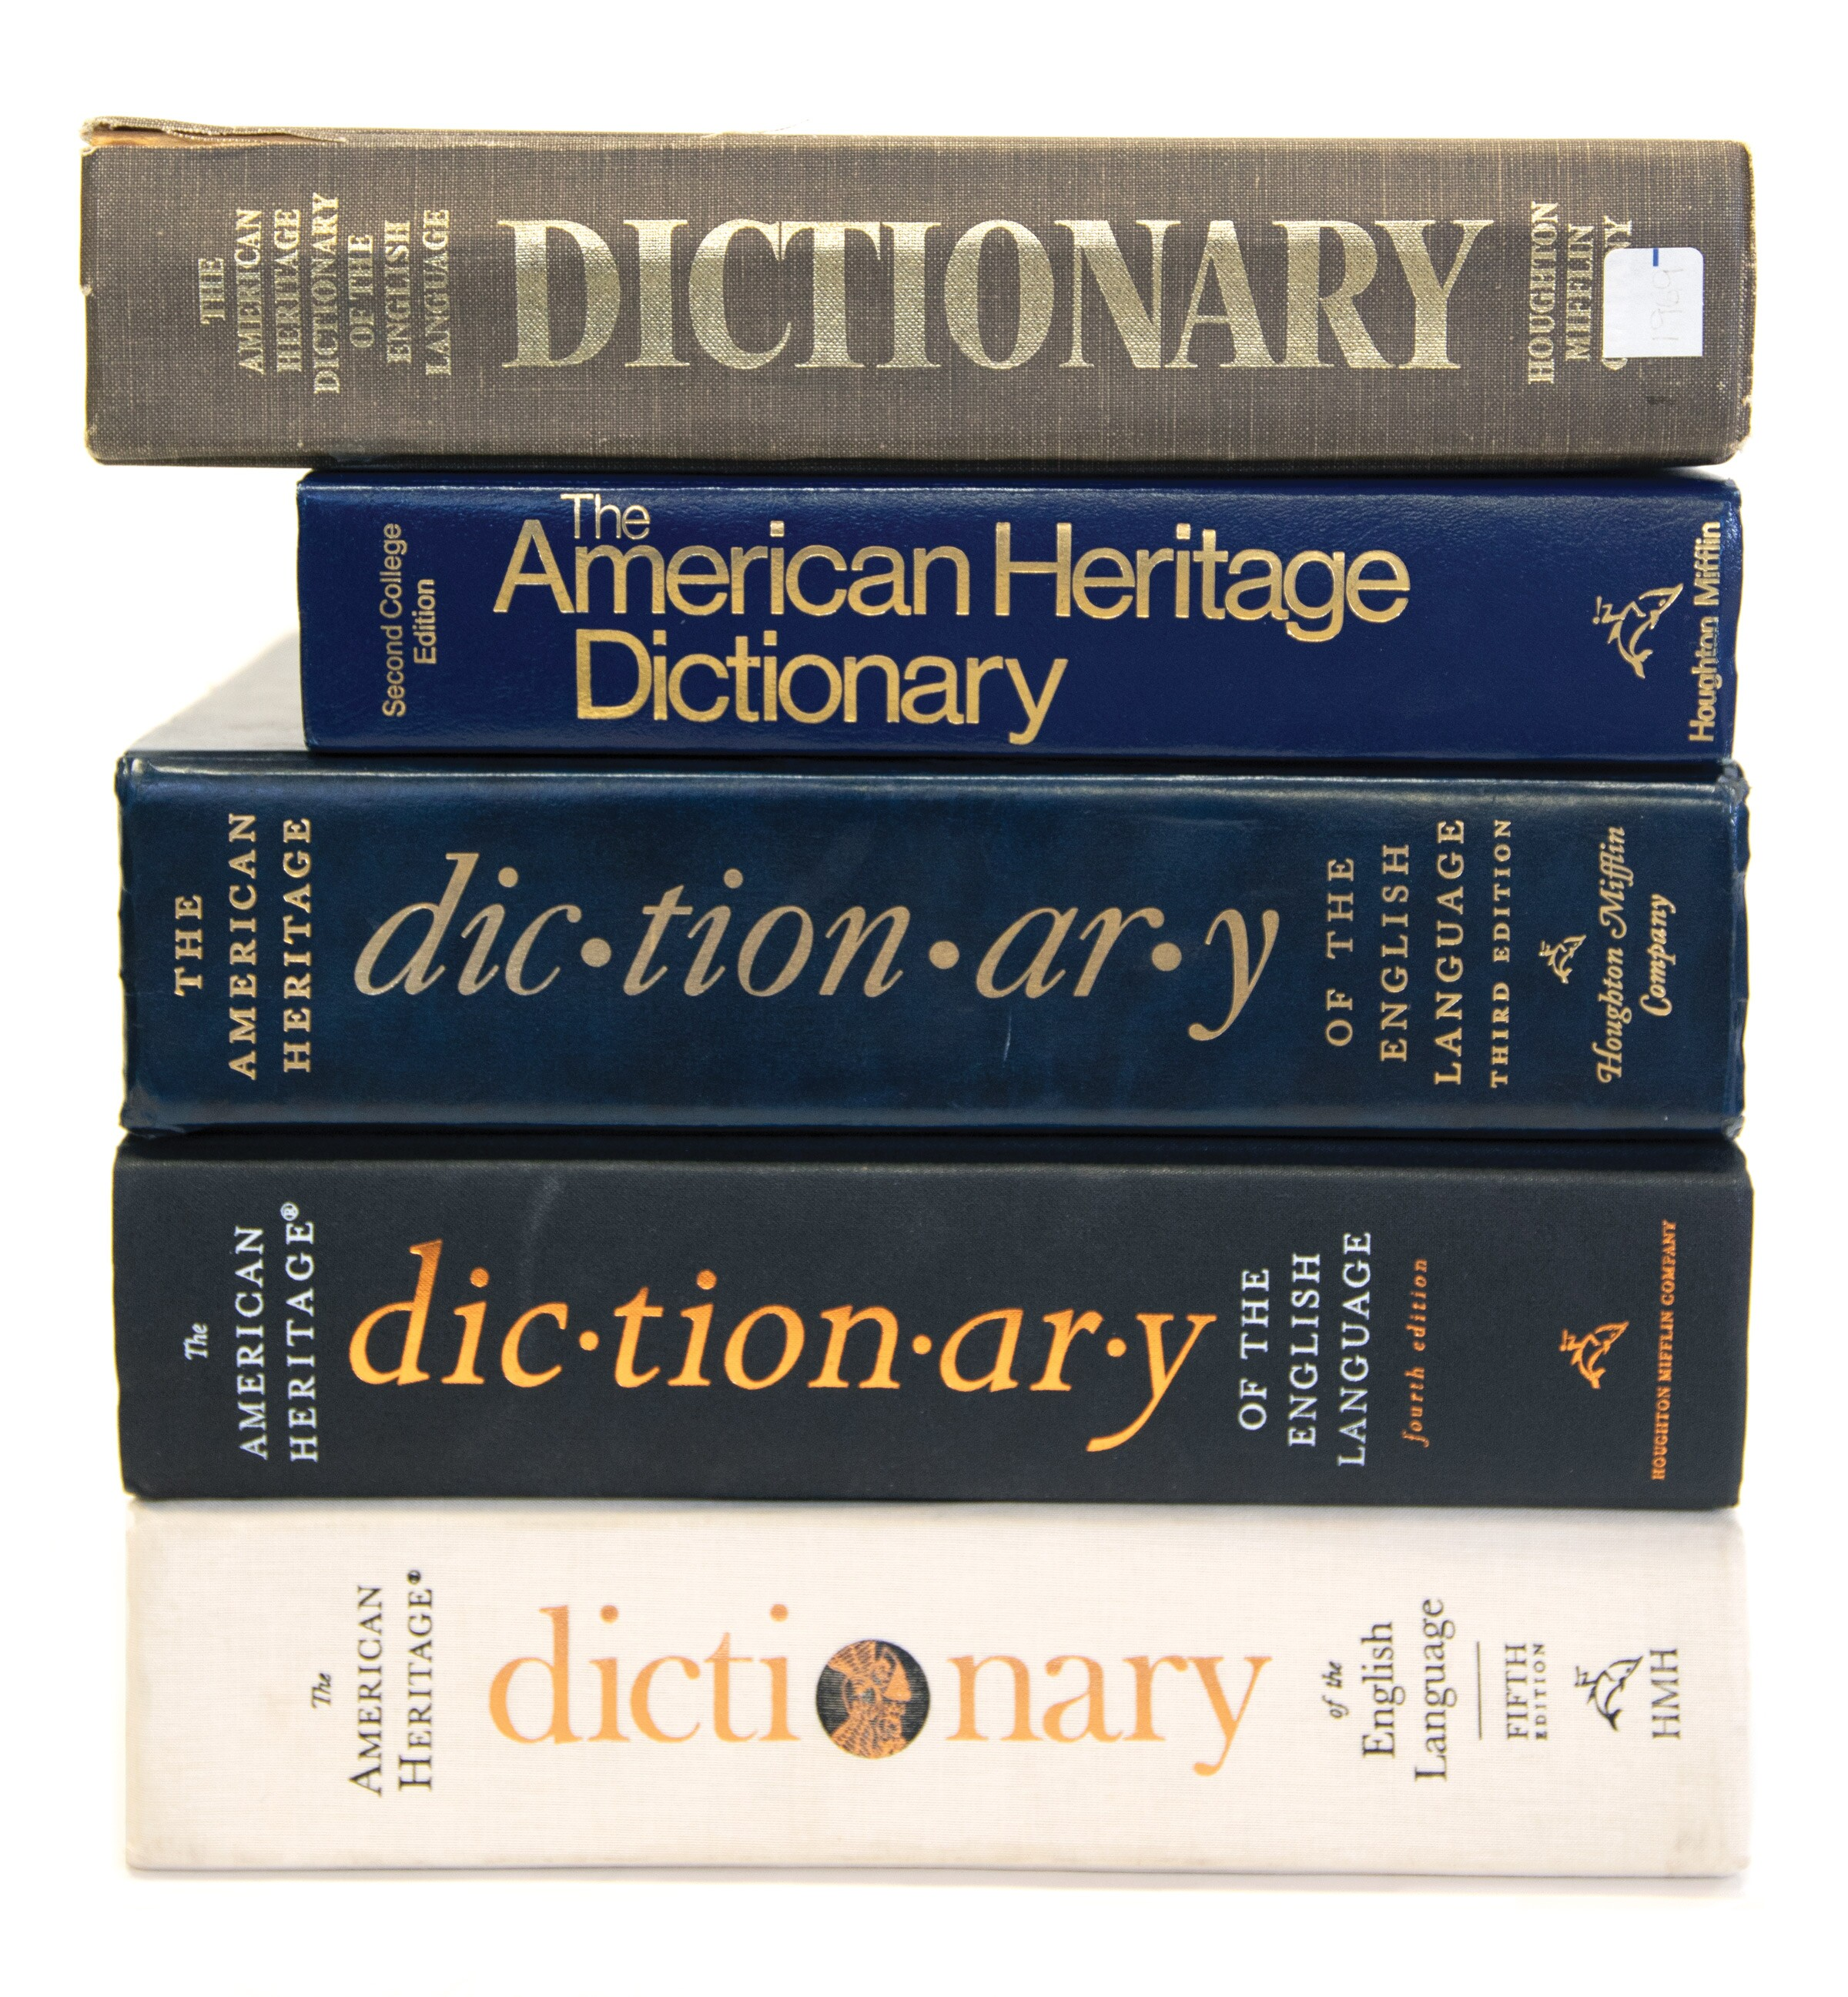 The American Heritage Dictionary usage panel: Defining